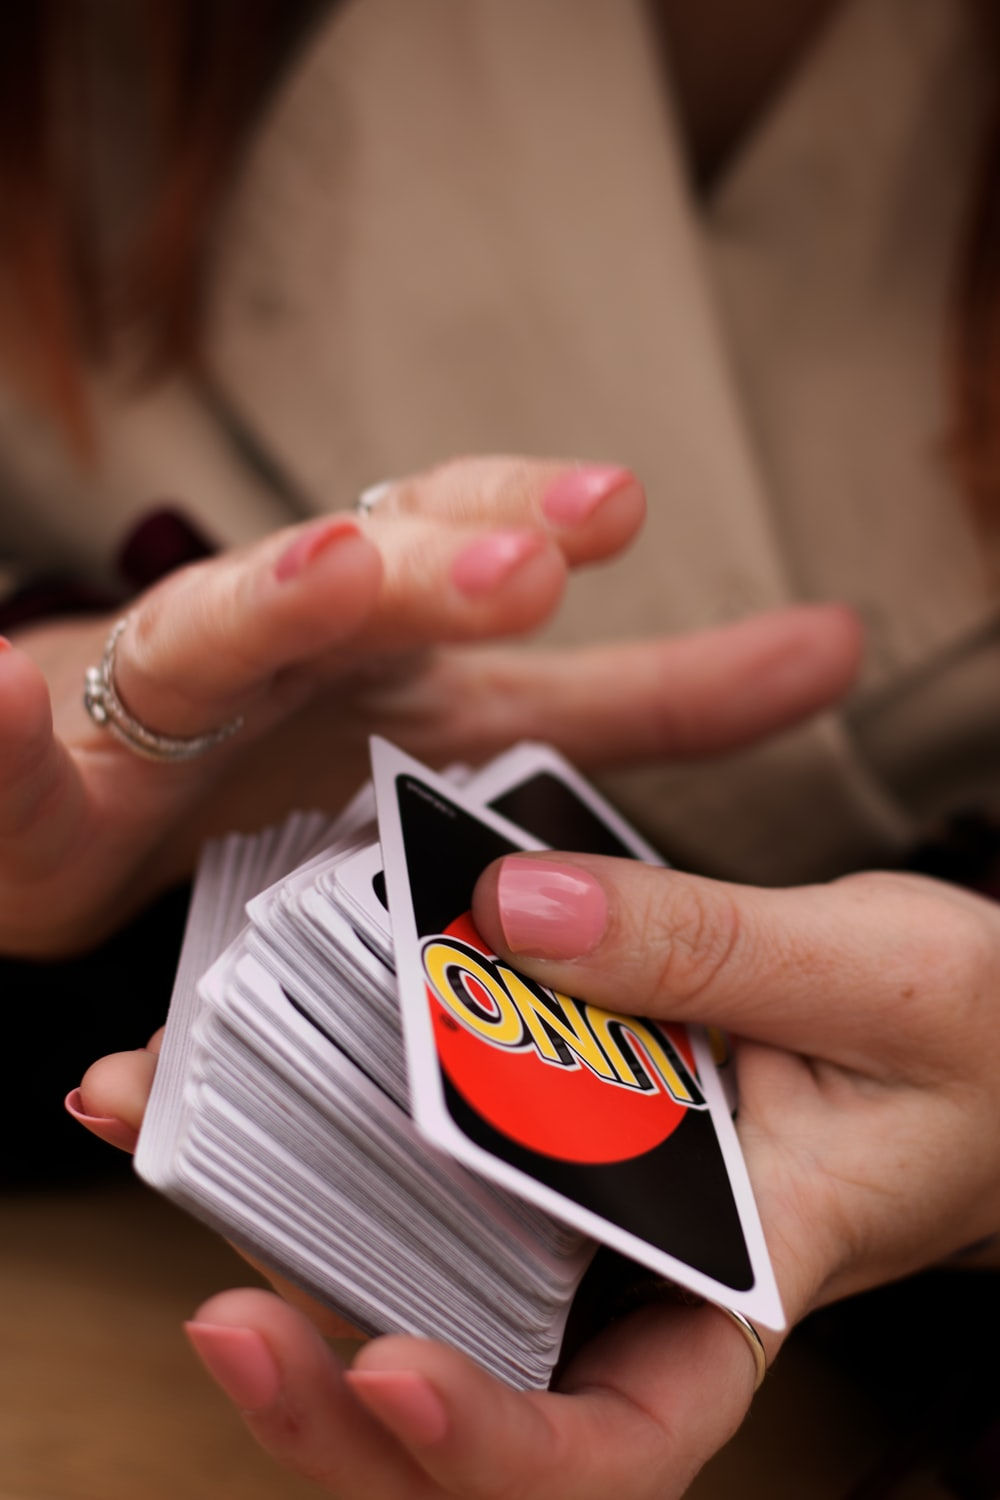 person holding white red and black card